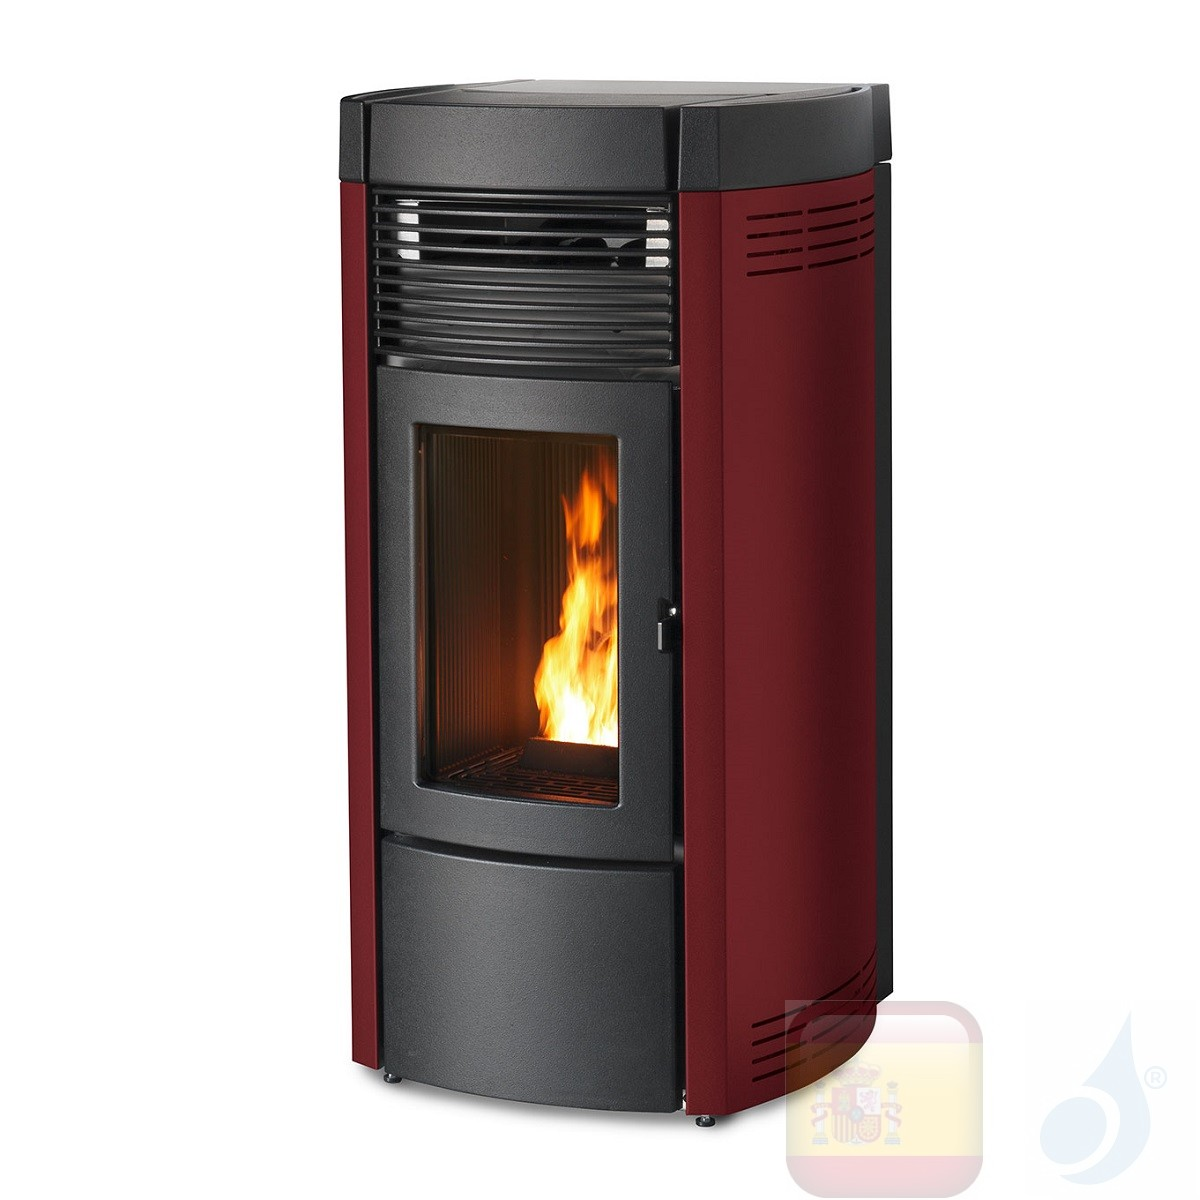 Estufa de pellets MCZ 13.9 kW Musa Comfort Air Matic 14 M1 Bordeaux